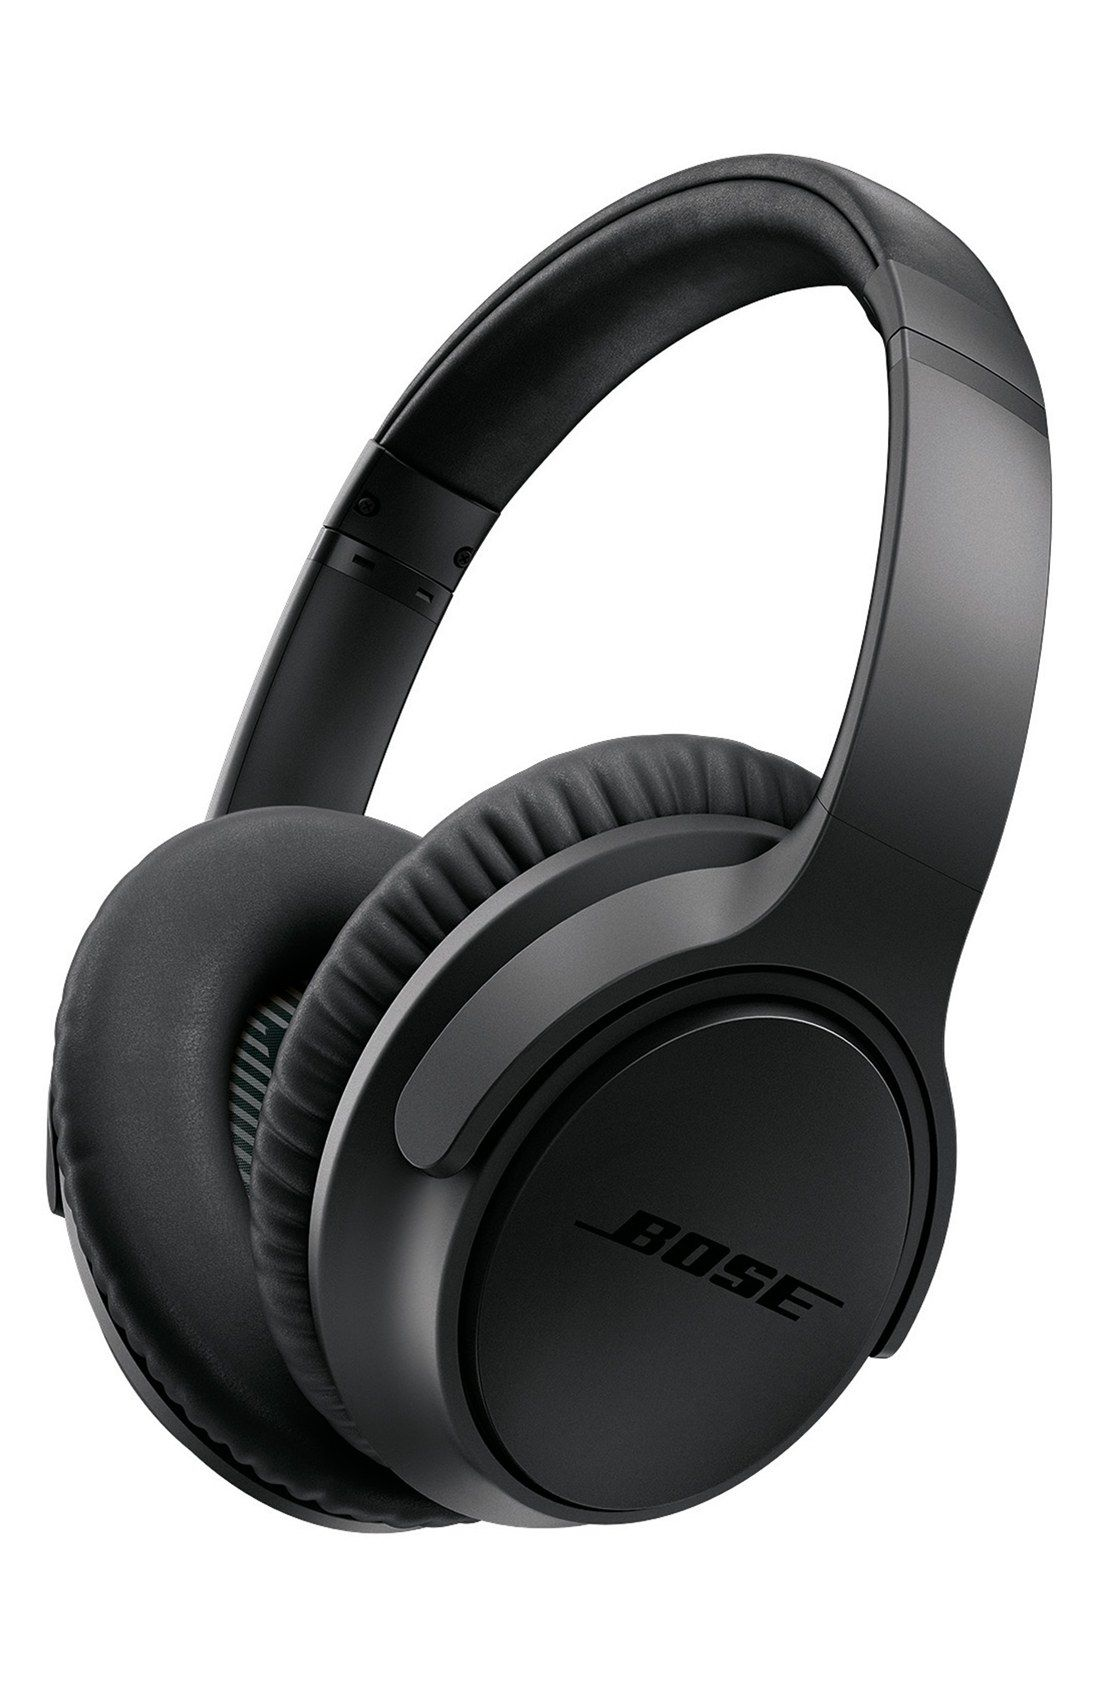 Bose Soundtrue Ii Around Ear Android Headphones Bose Headphones Wired Headphones Headphones